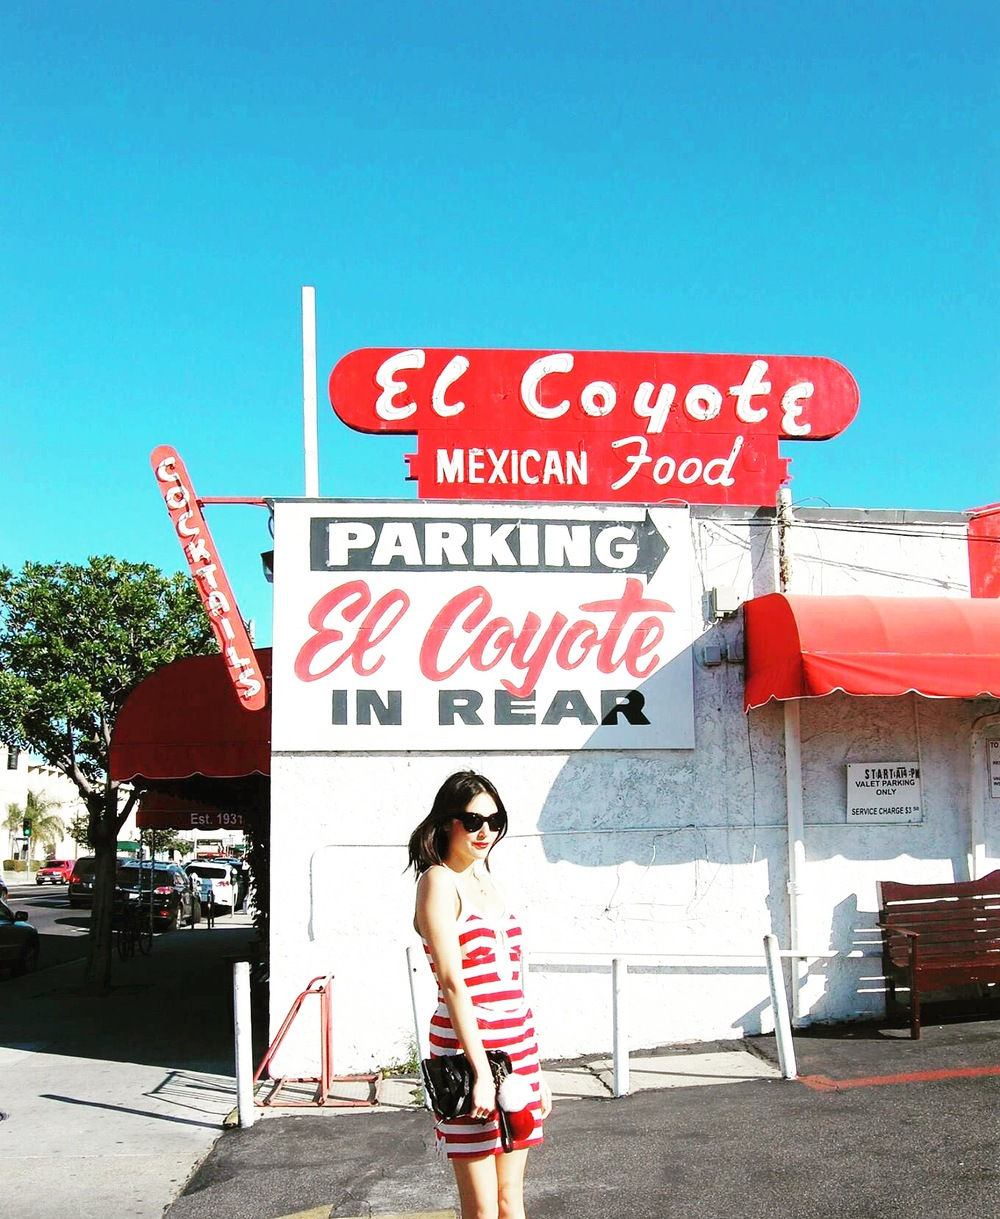 Off to a historic lunch at El Coyote! Hopefully it won't be your last meal....JKJK! Isabel Marant dress Size 2 $98, Alexander Wang clutch $198.